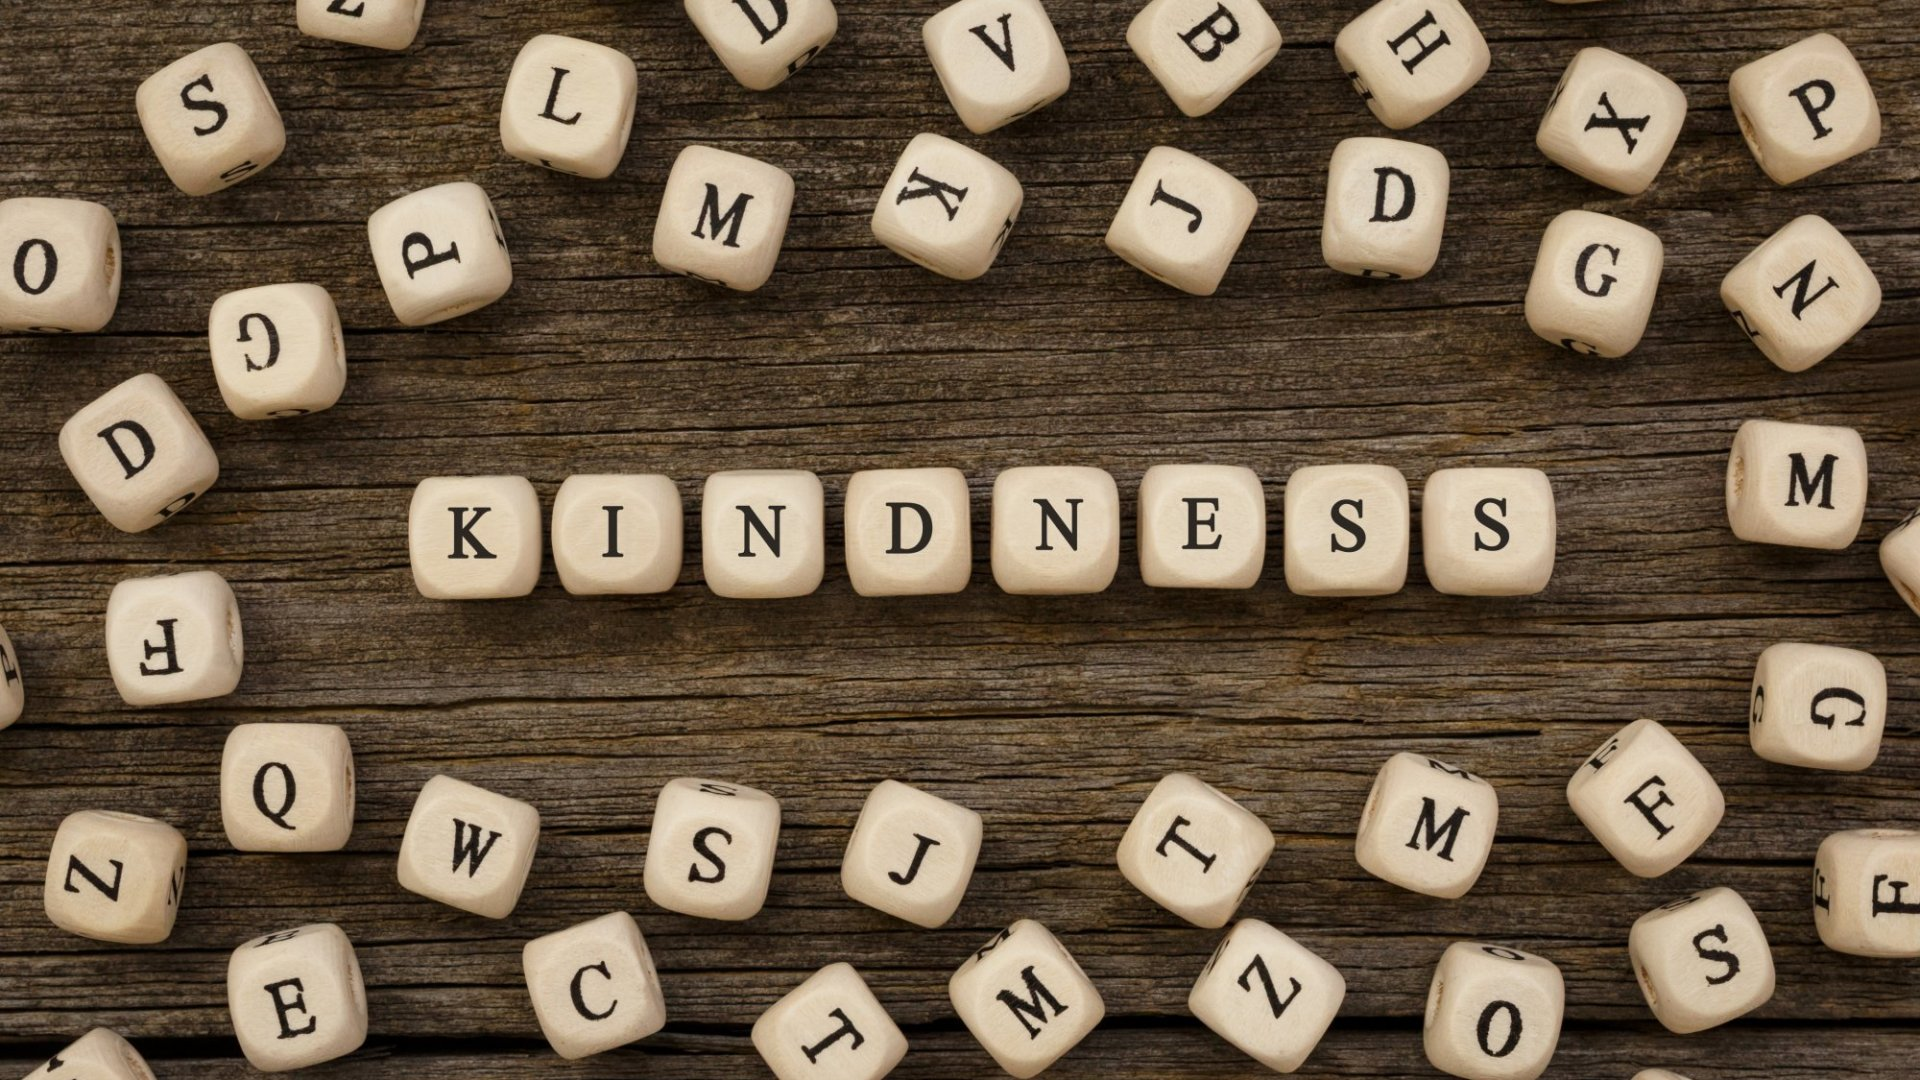 Here's Why 'Kindness' Is a Much Better Buzzword For 2020 Than 'Empathy'